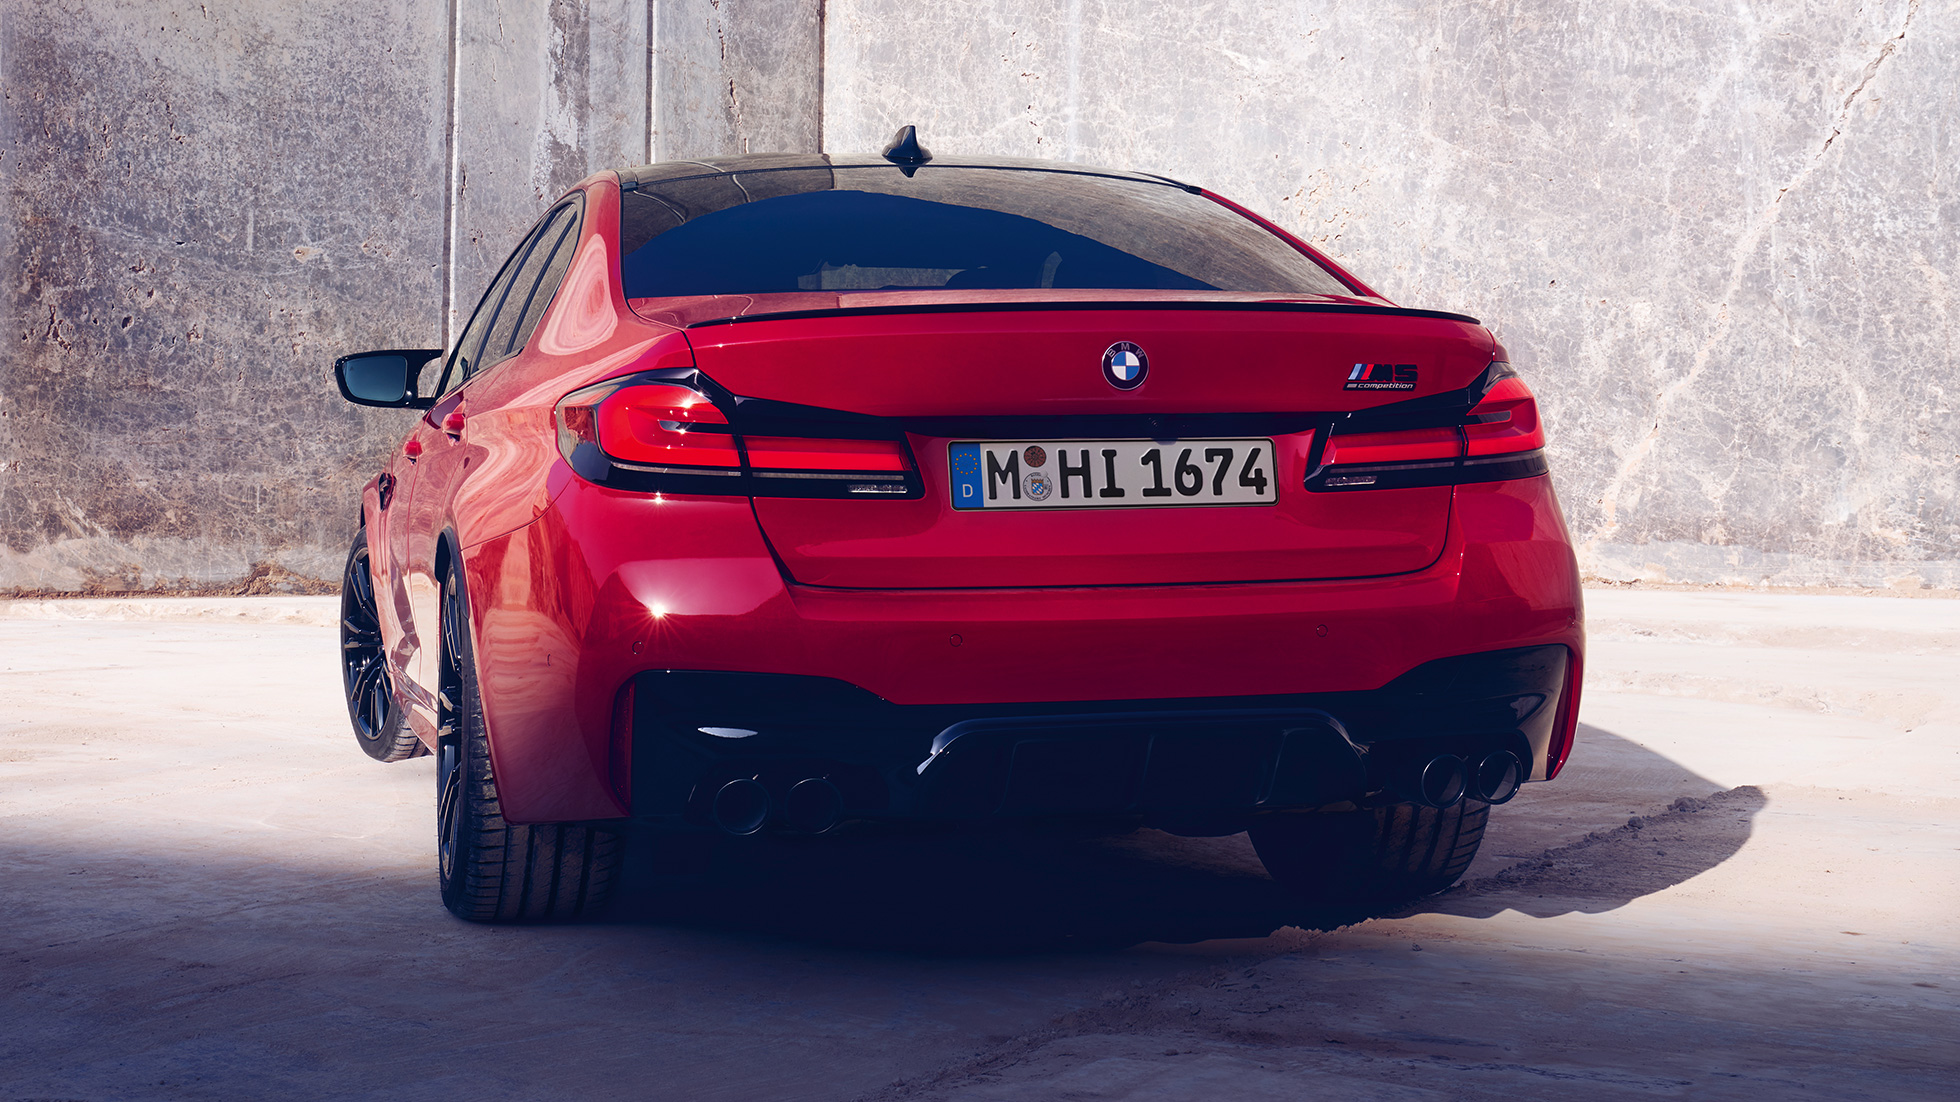 Here Is The Pricing Guide For The 2019 Bmw 330i And 330i Xdrive Bmw Volkswagen Volkswagen Transporter